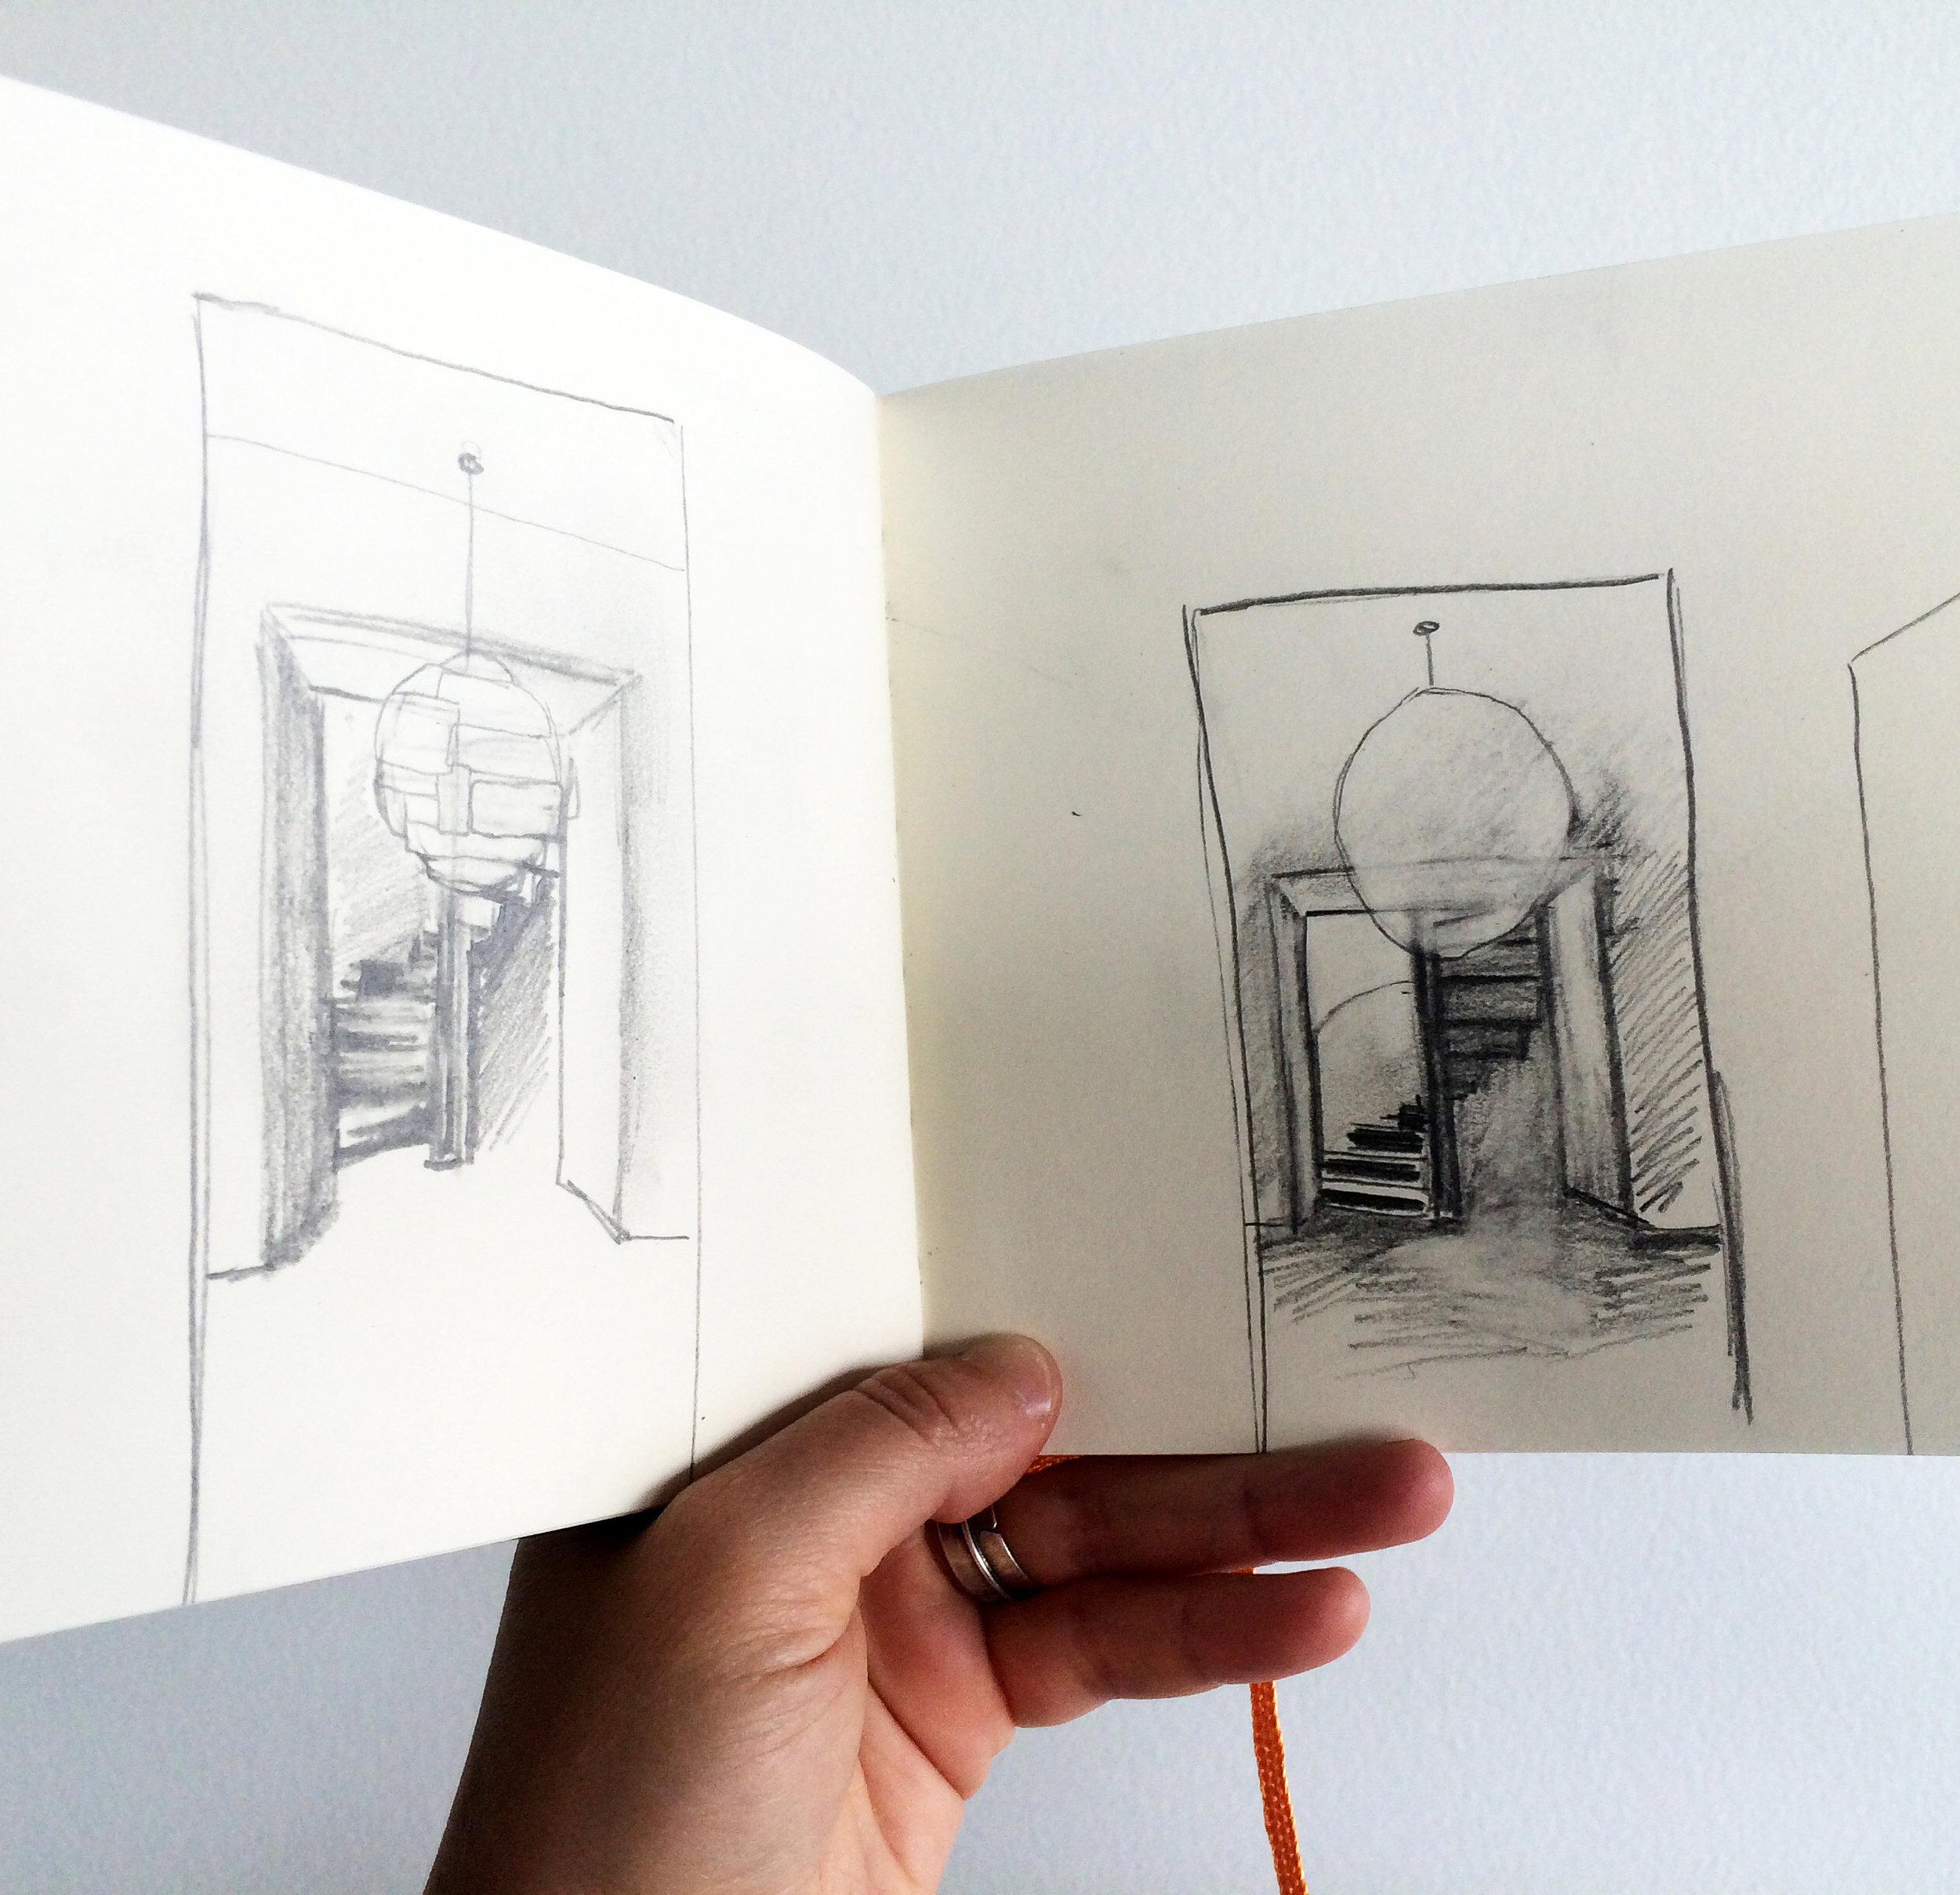 First Sketches of the Location of the Light